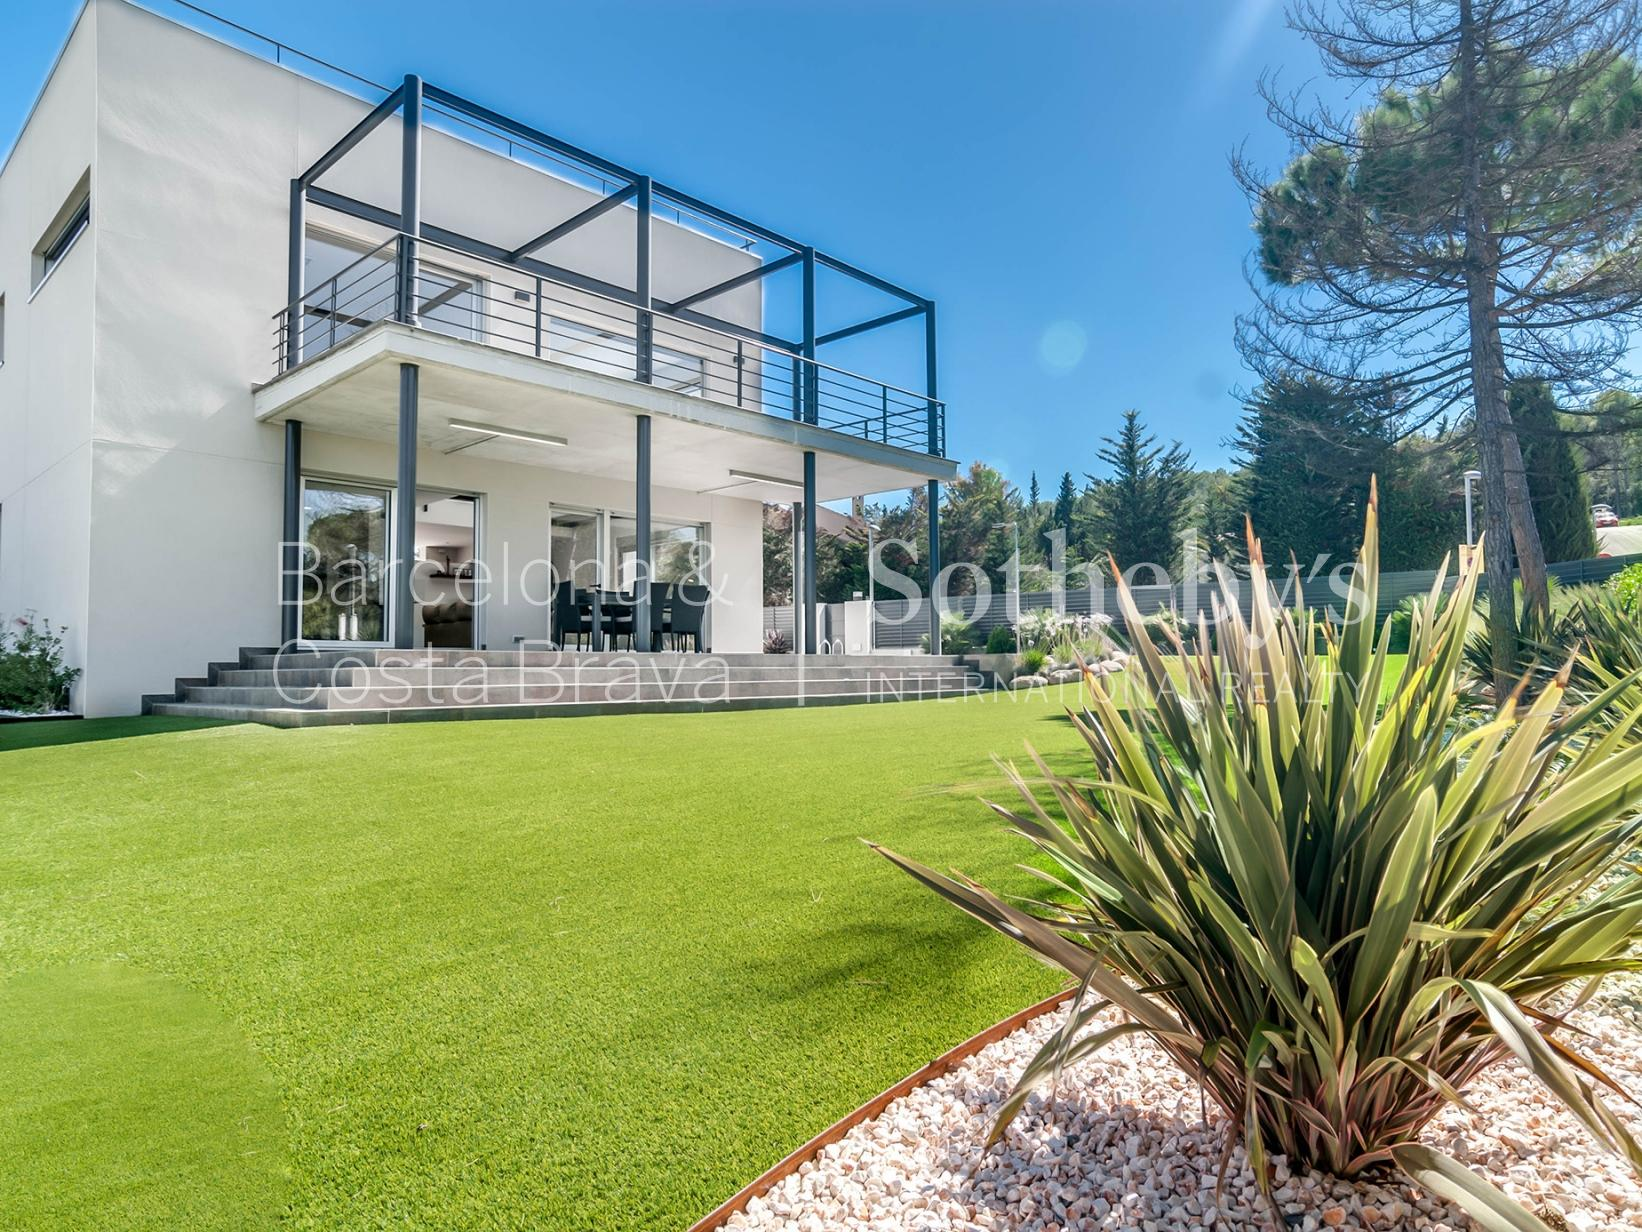 Single Family Home for Sale at Modern and Functional Property in Valldoreix Sant Cugat Del Valles, Barcelona 08172 Spain